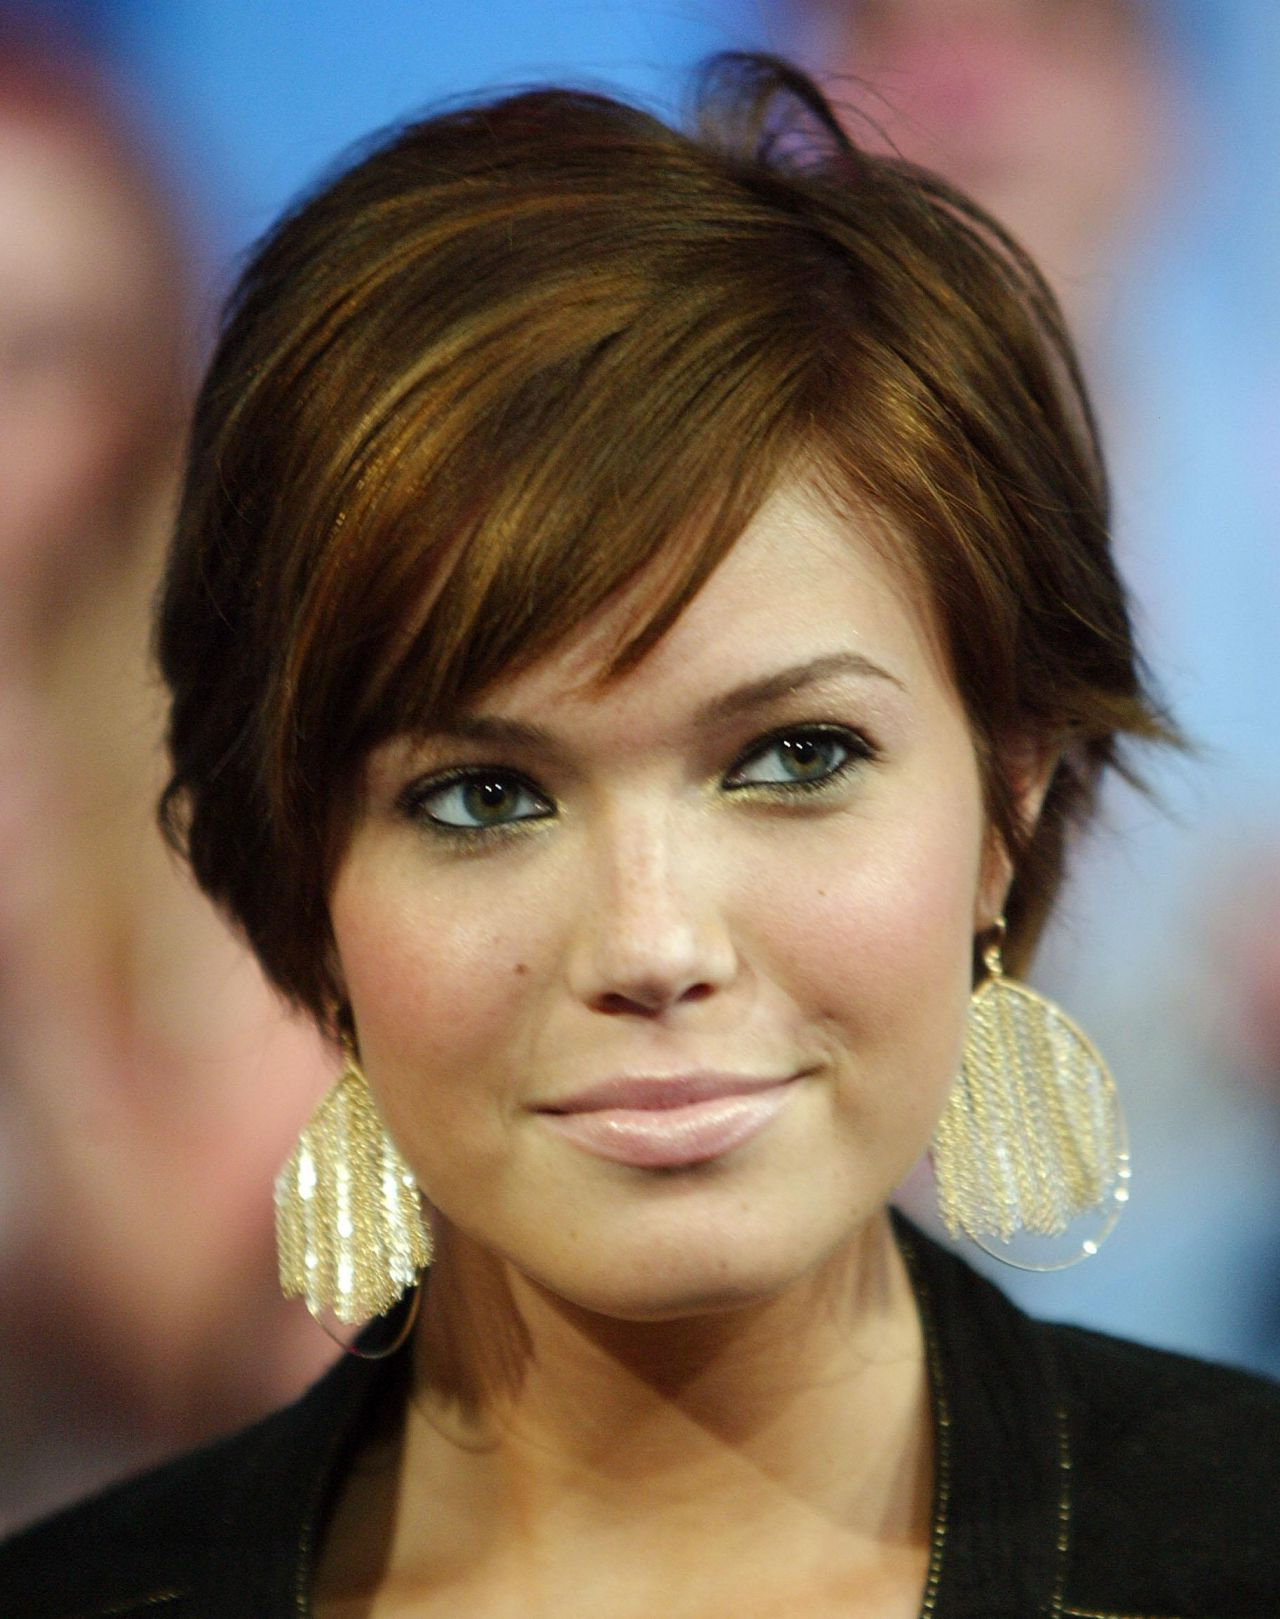 Short Female Hairstyles For Round Faces 2018 | Beauty | Pinterest Within Short Hair For Round Face Women (View 2 of 25)